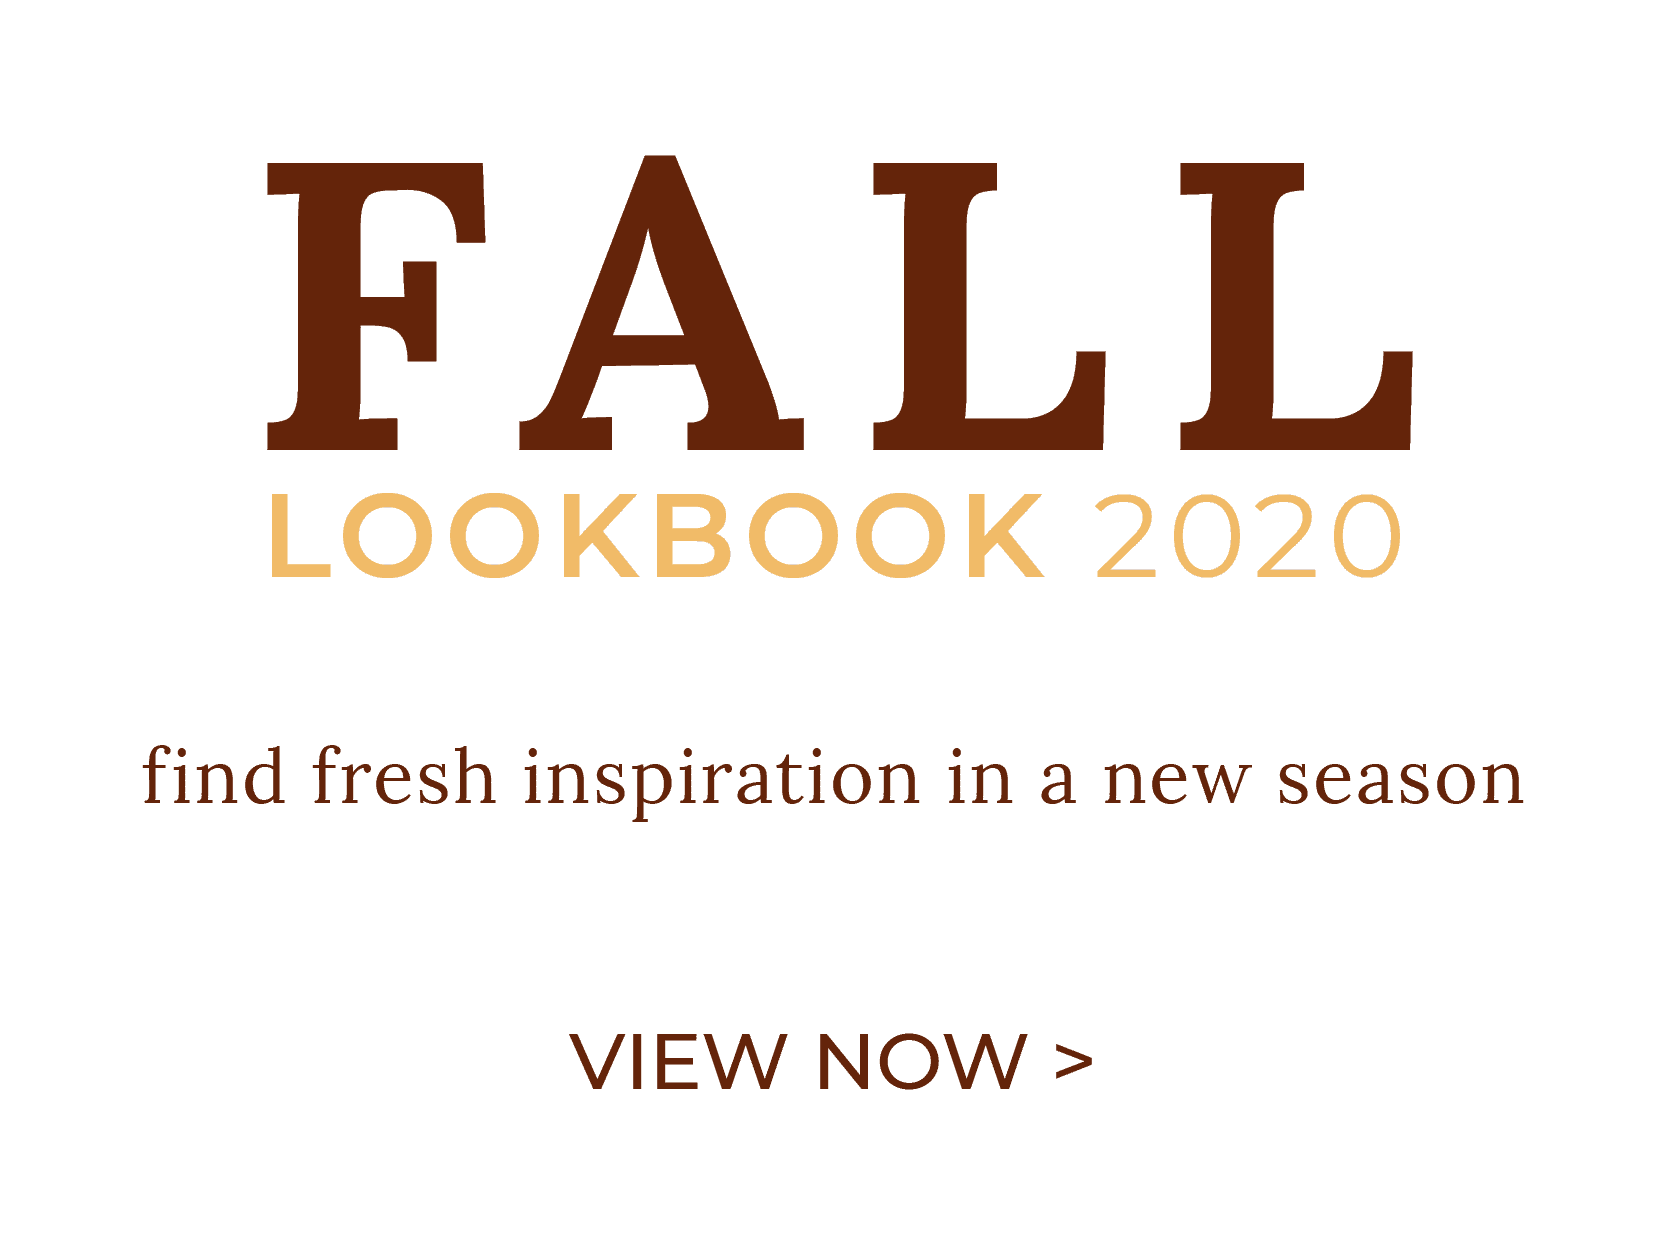 Fall 2020 Lookbook